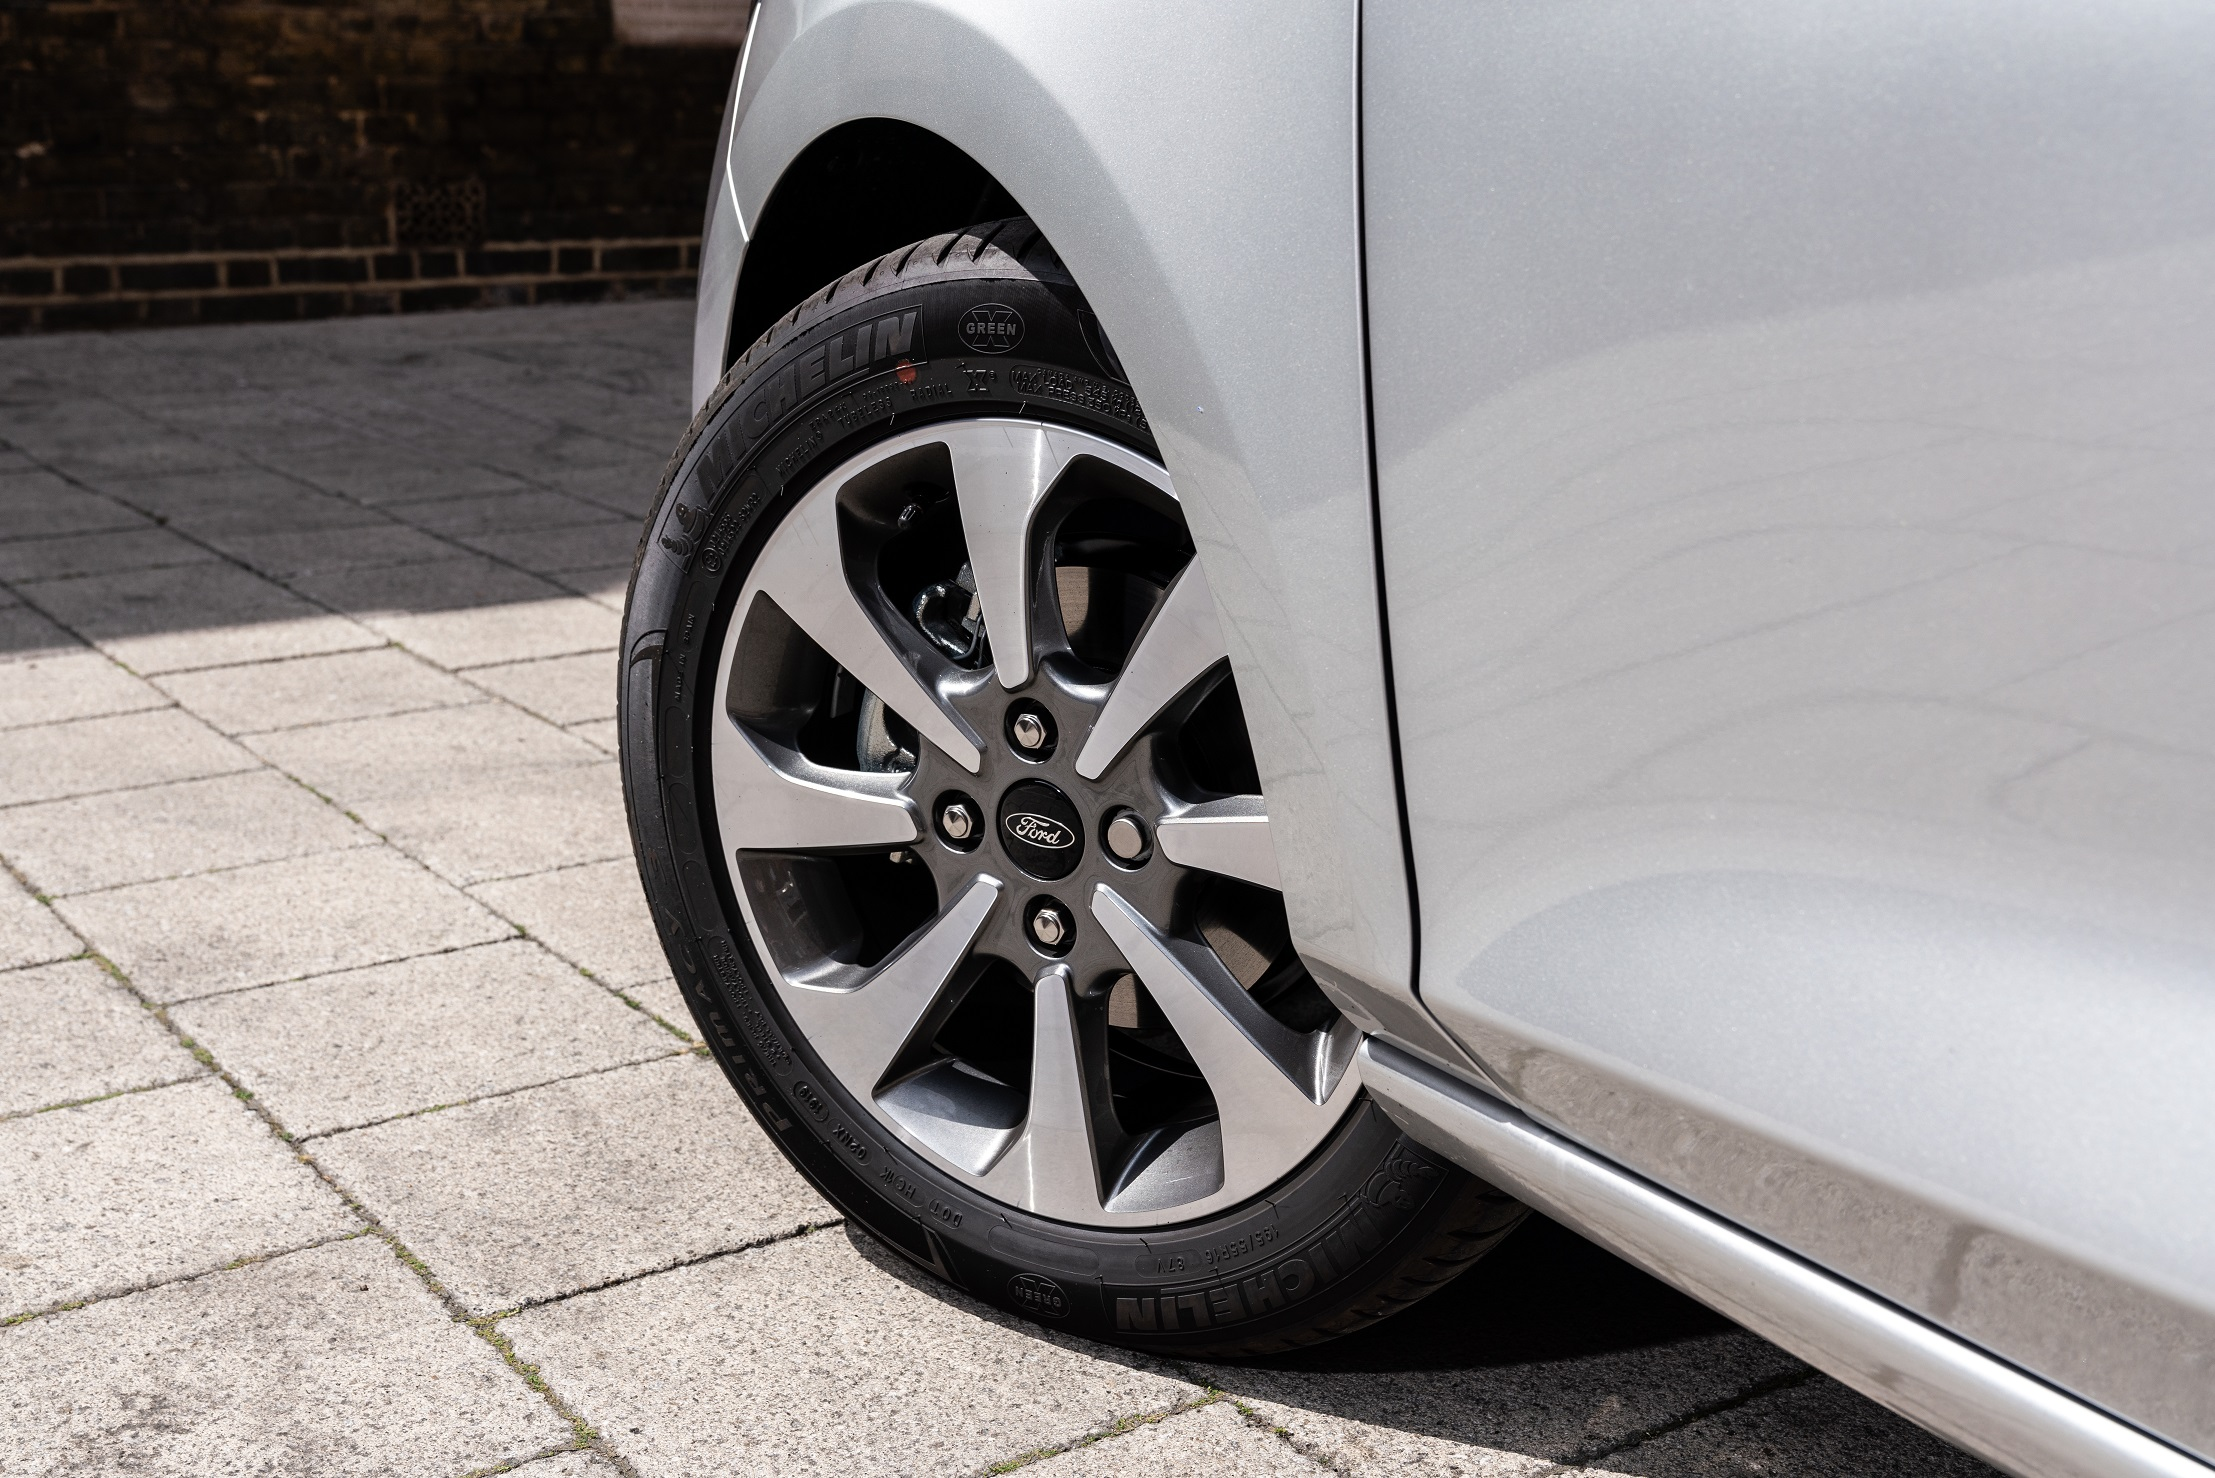 All Trend cars get 16-inch alloy wheels